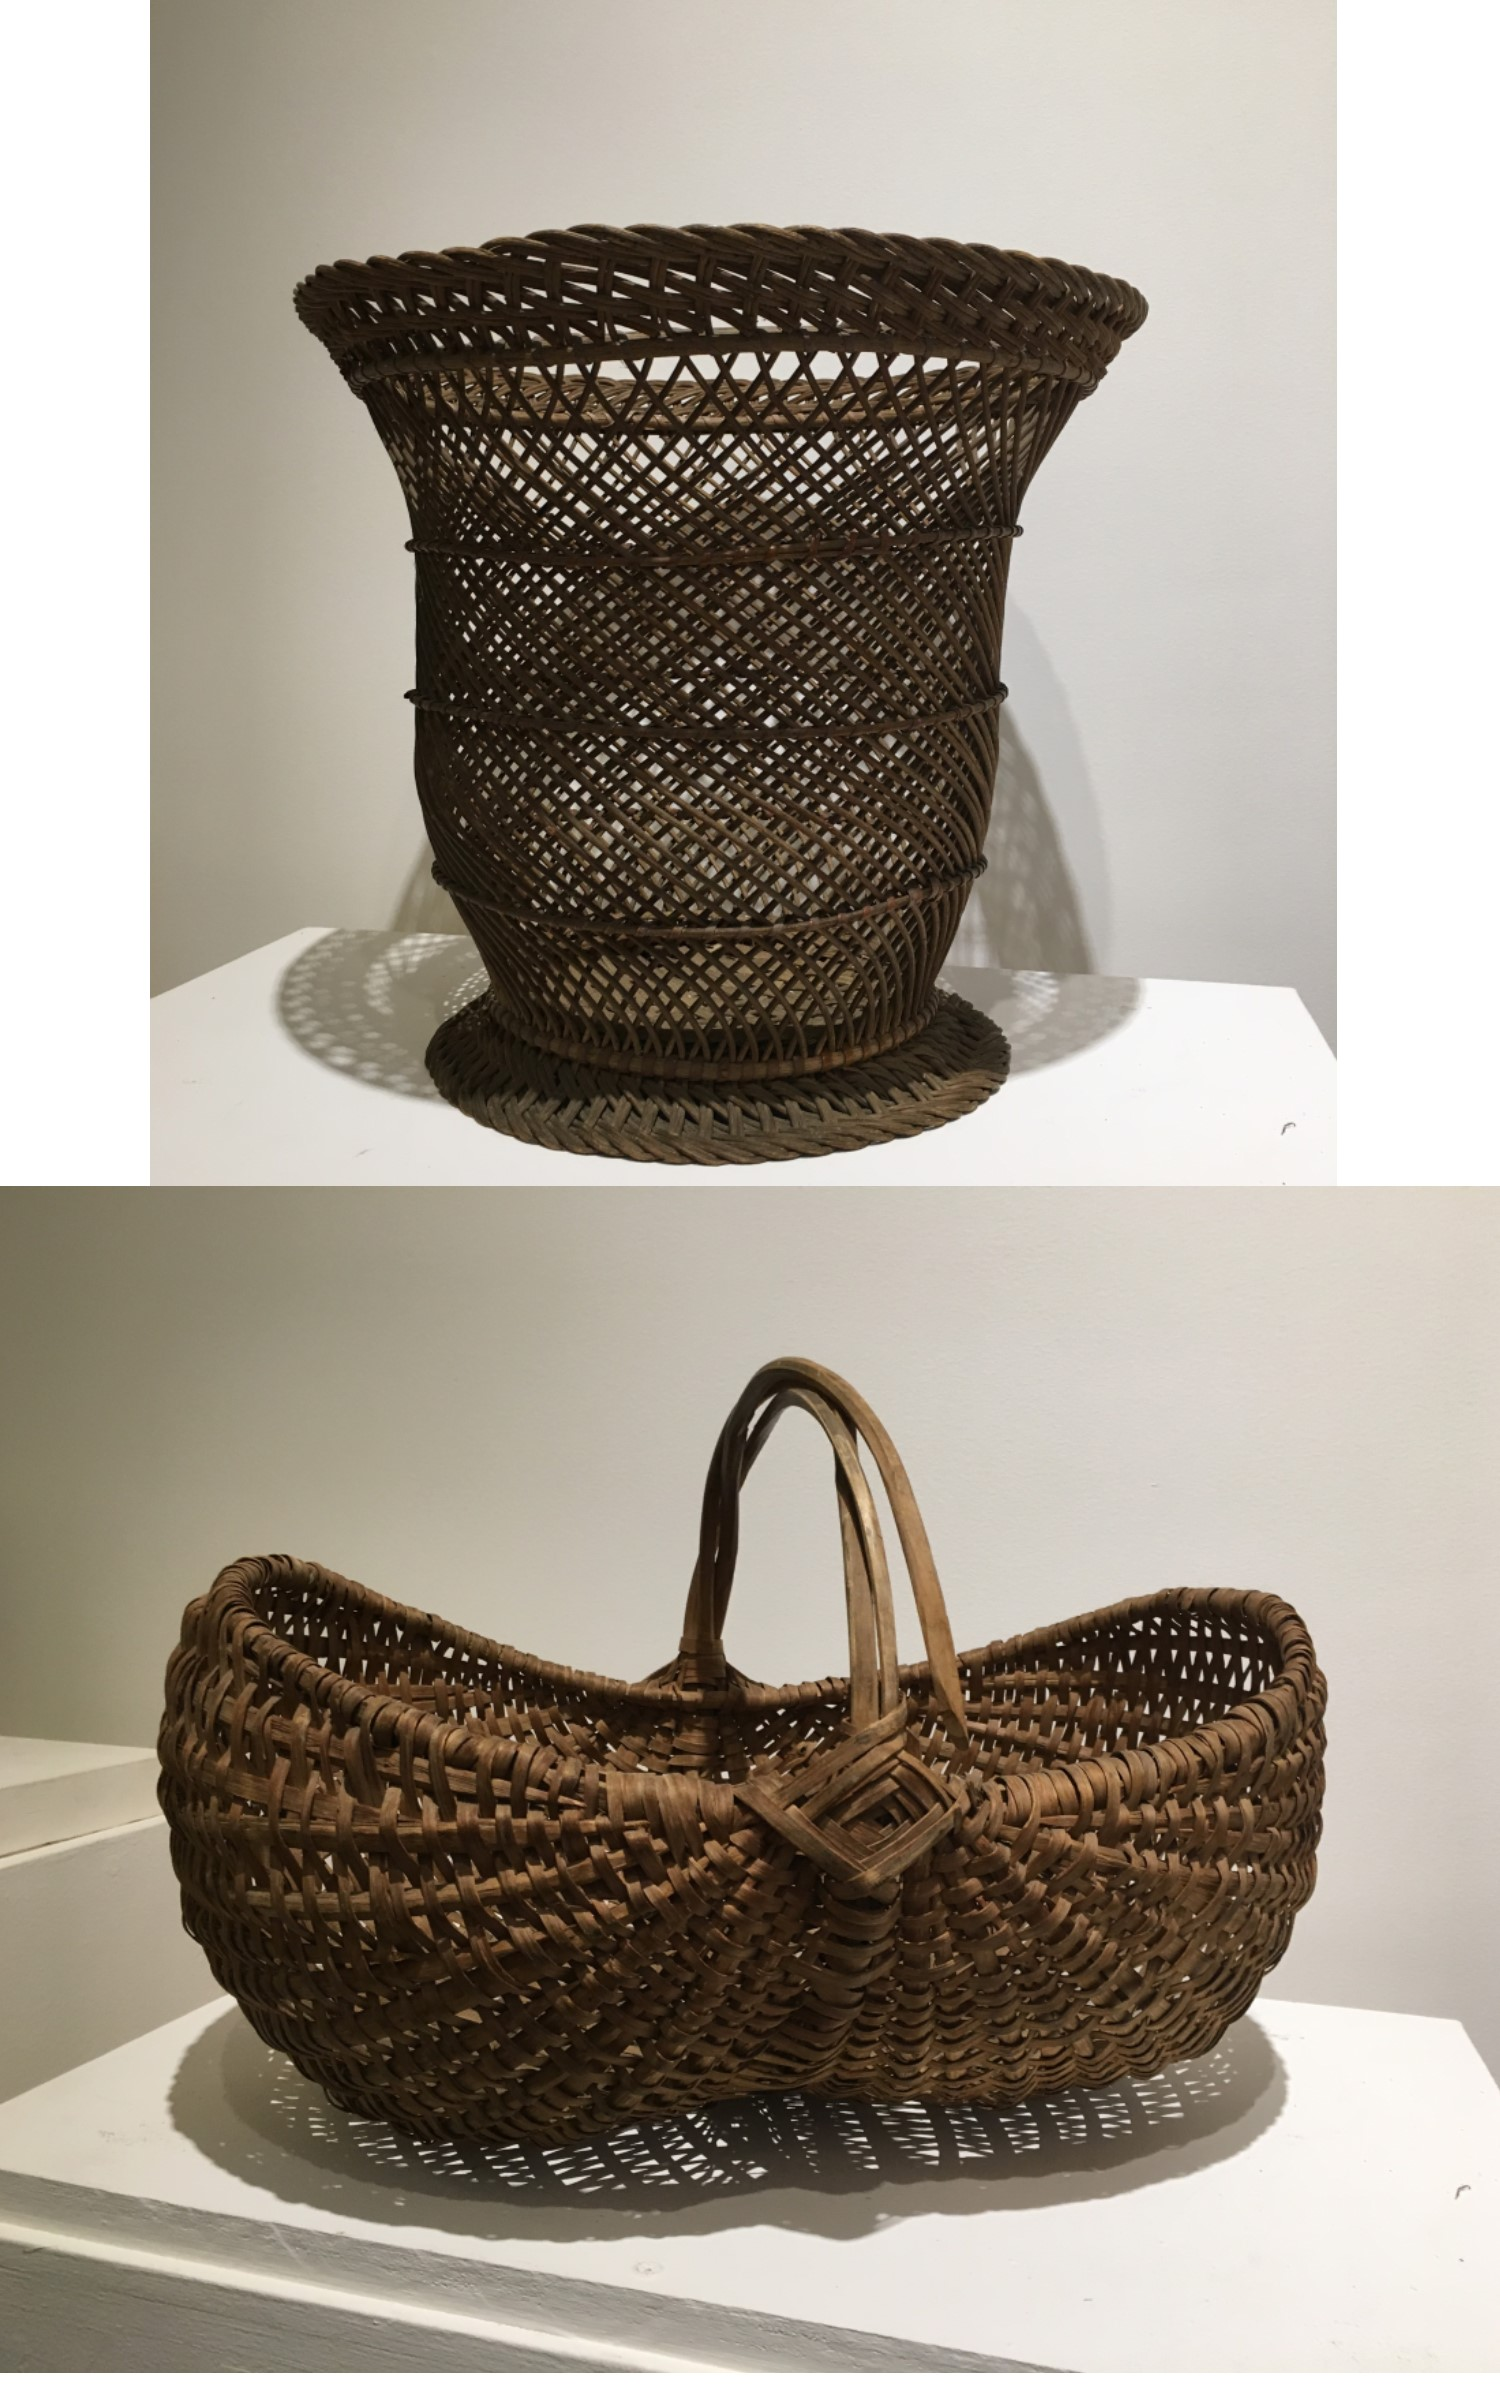 <h3>WASTEPAPER BASKET</em></h3>